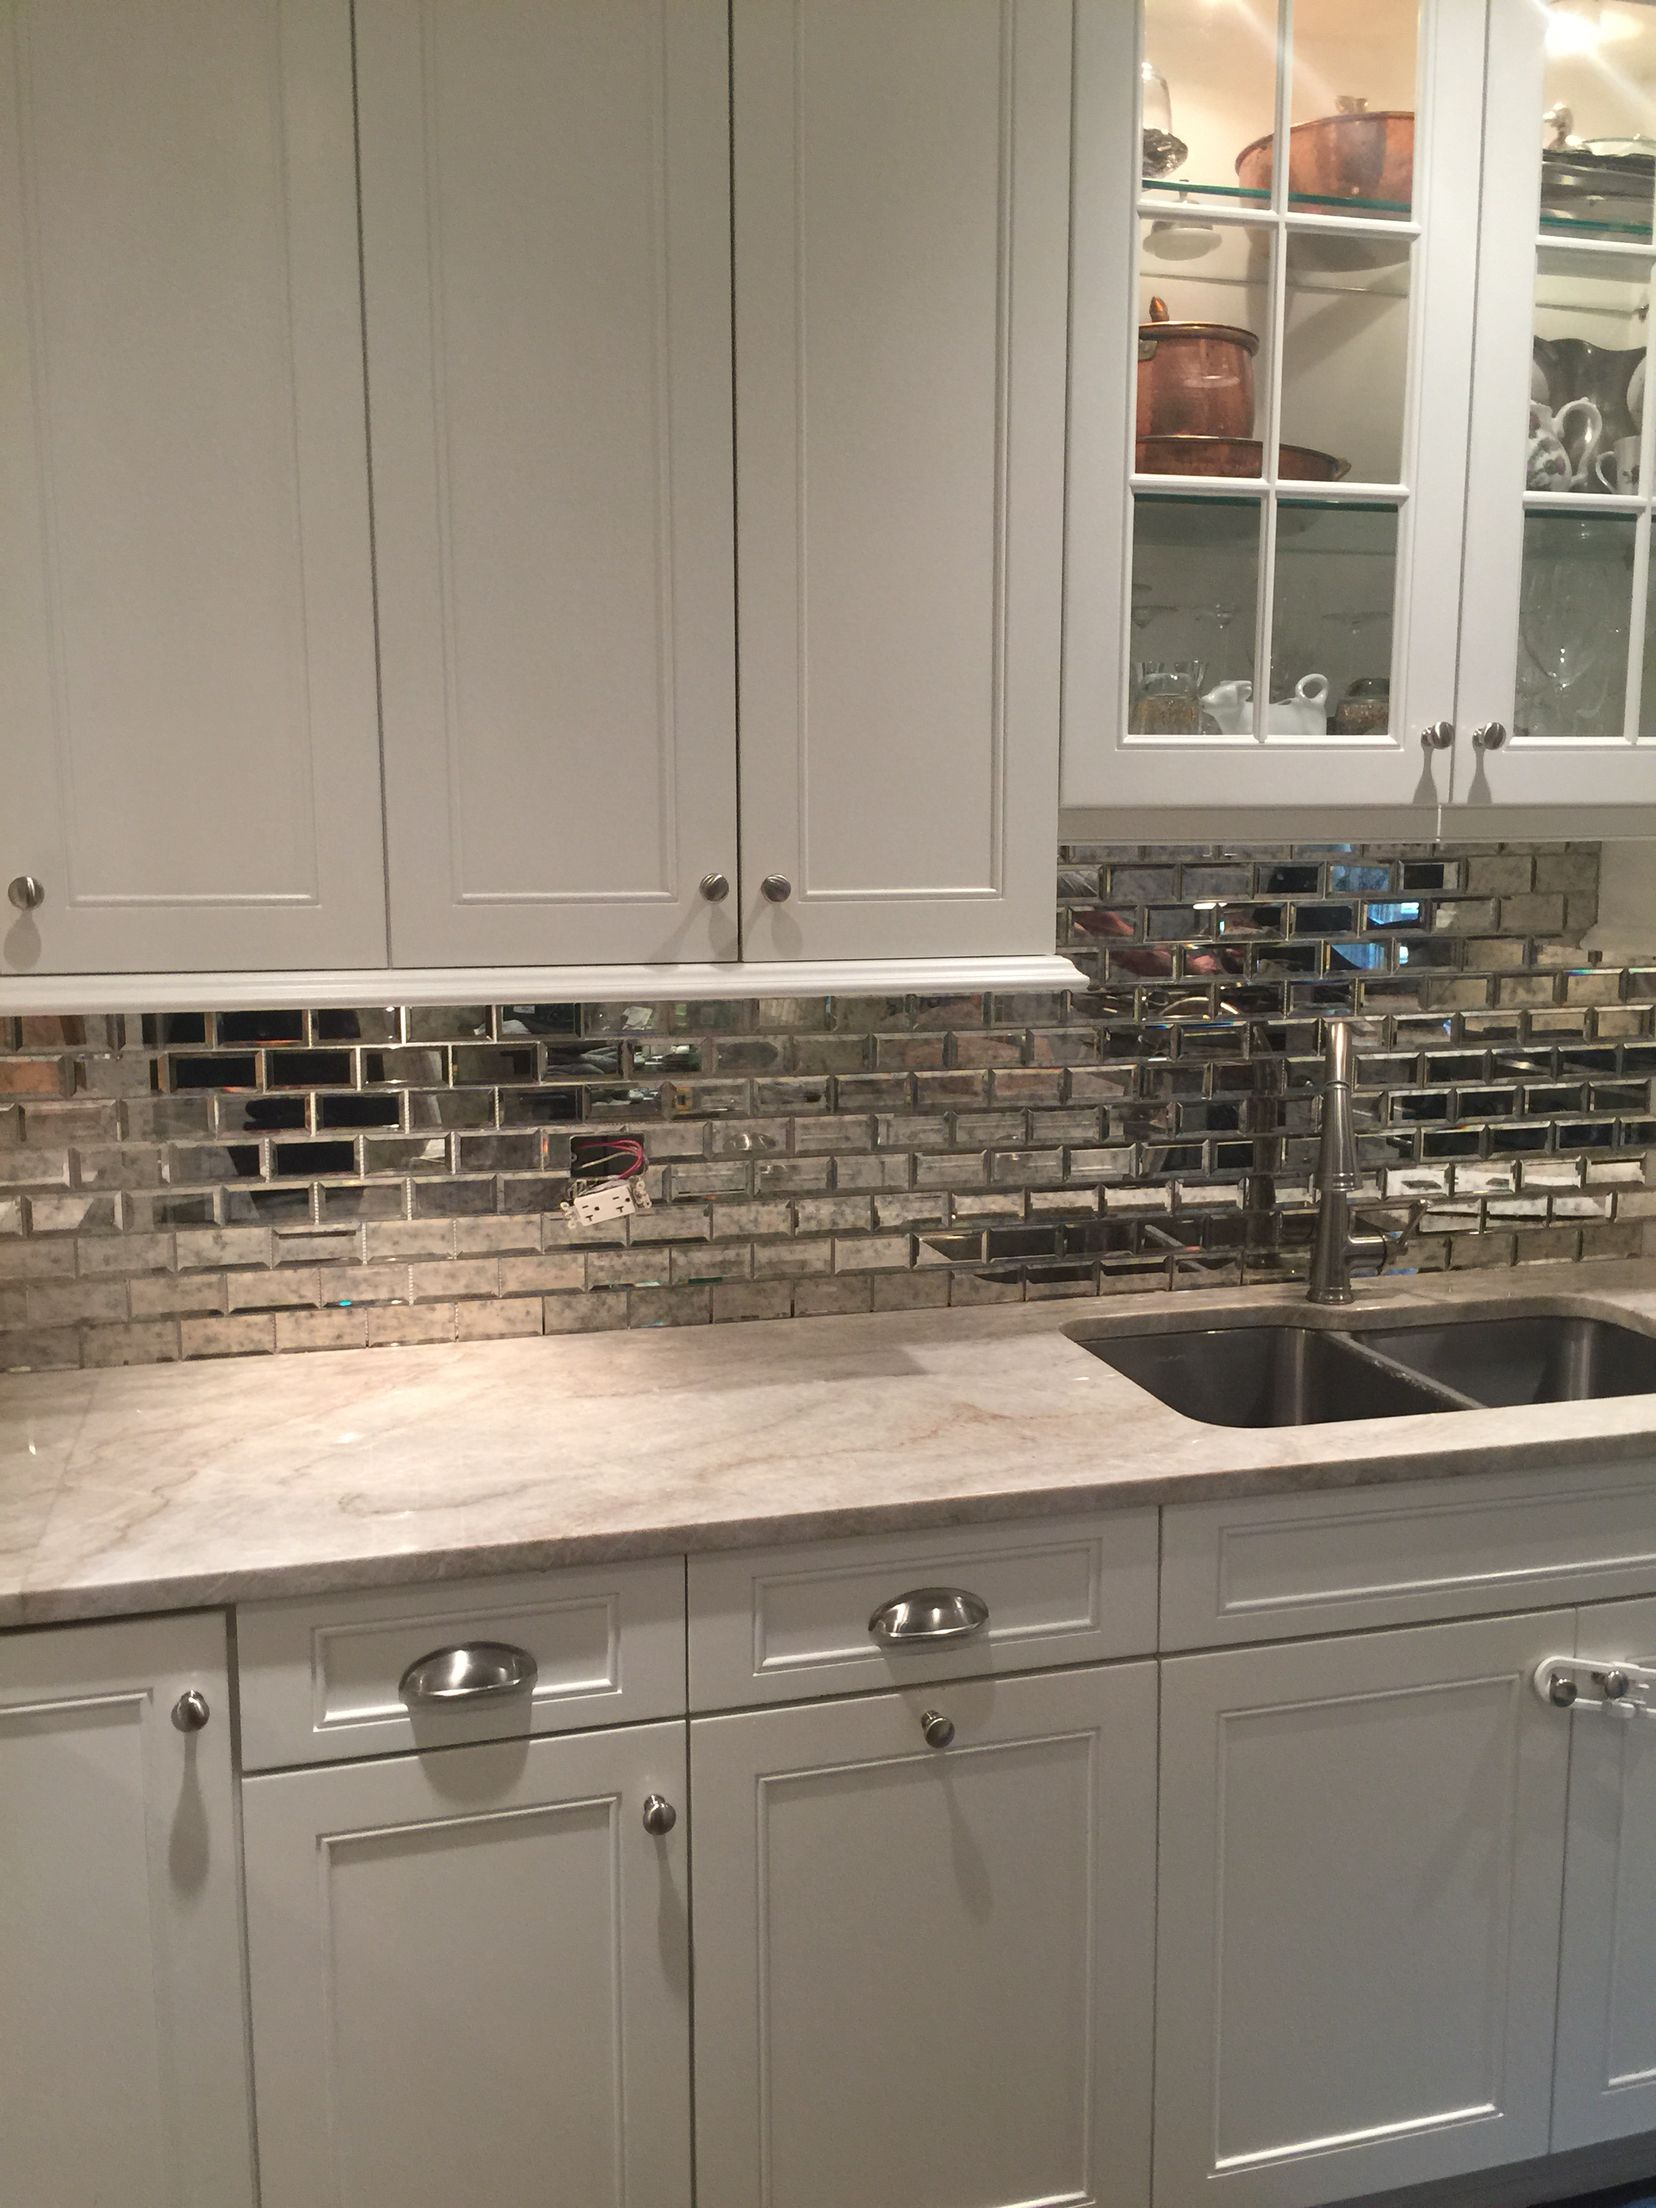 Simply White Kitchen Cabinet Taj Mahal Quartzite Mirrored Subway